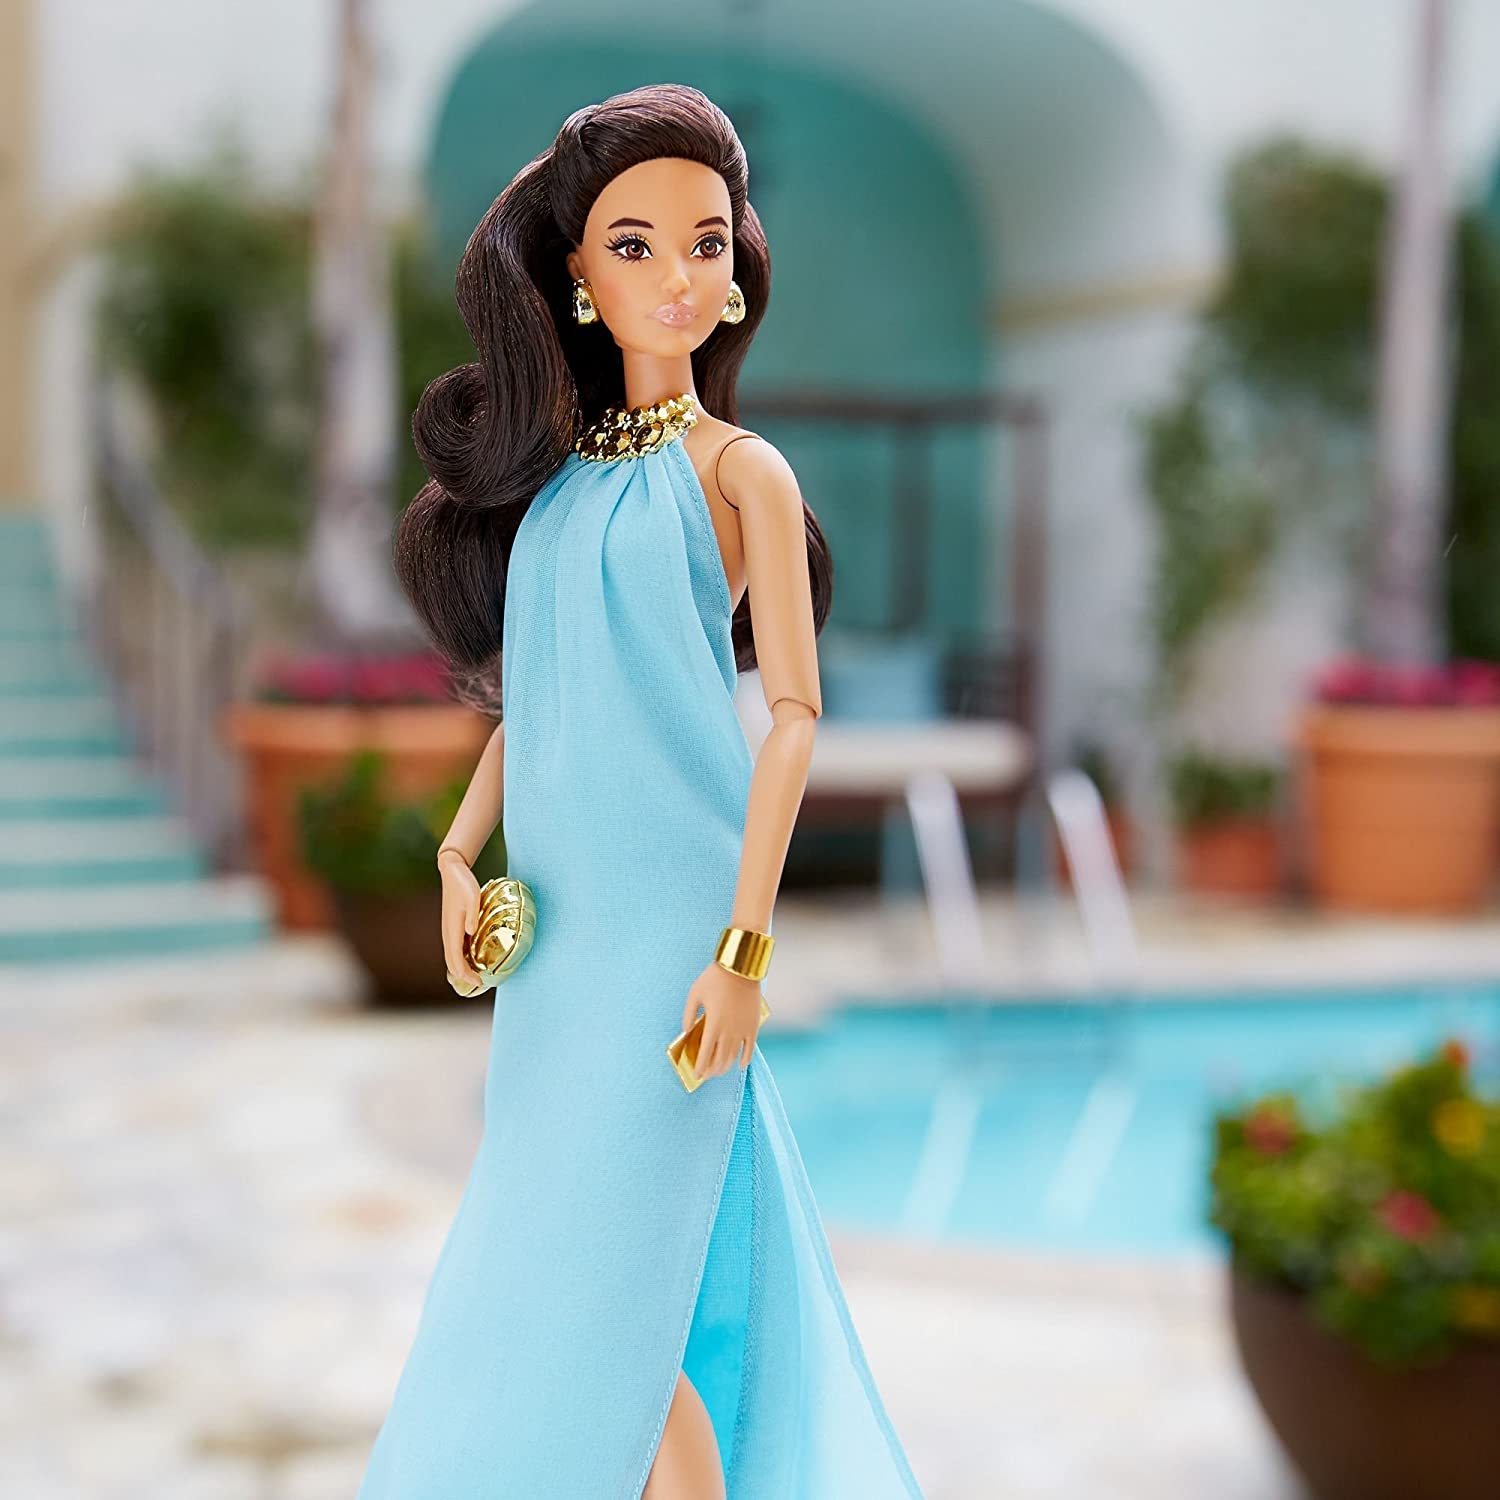 Amazon.com: Barbie Look Collector Barbie Doll - Pool Chic: Toys & Games